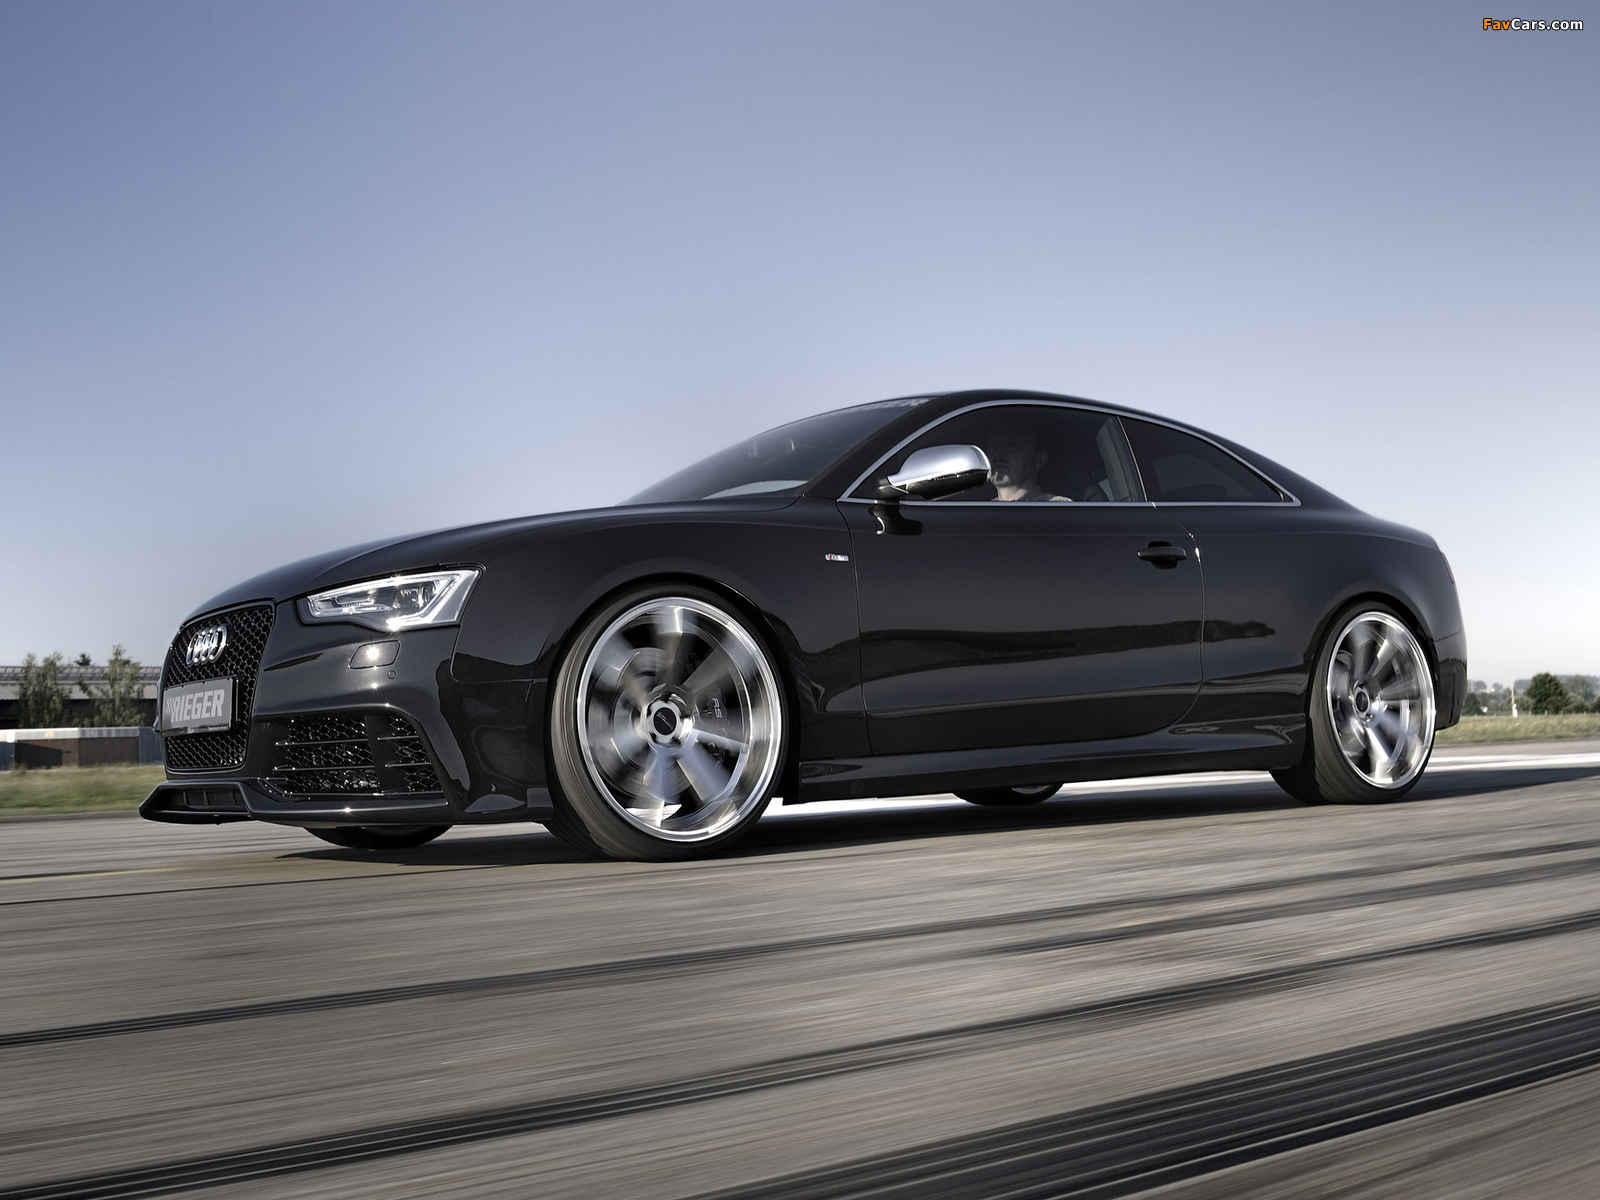 Images Of Rieger Audi A5 S Line Coupe 2012 1600x1200